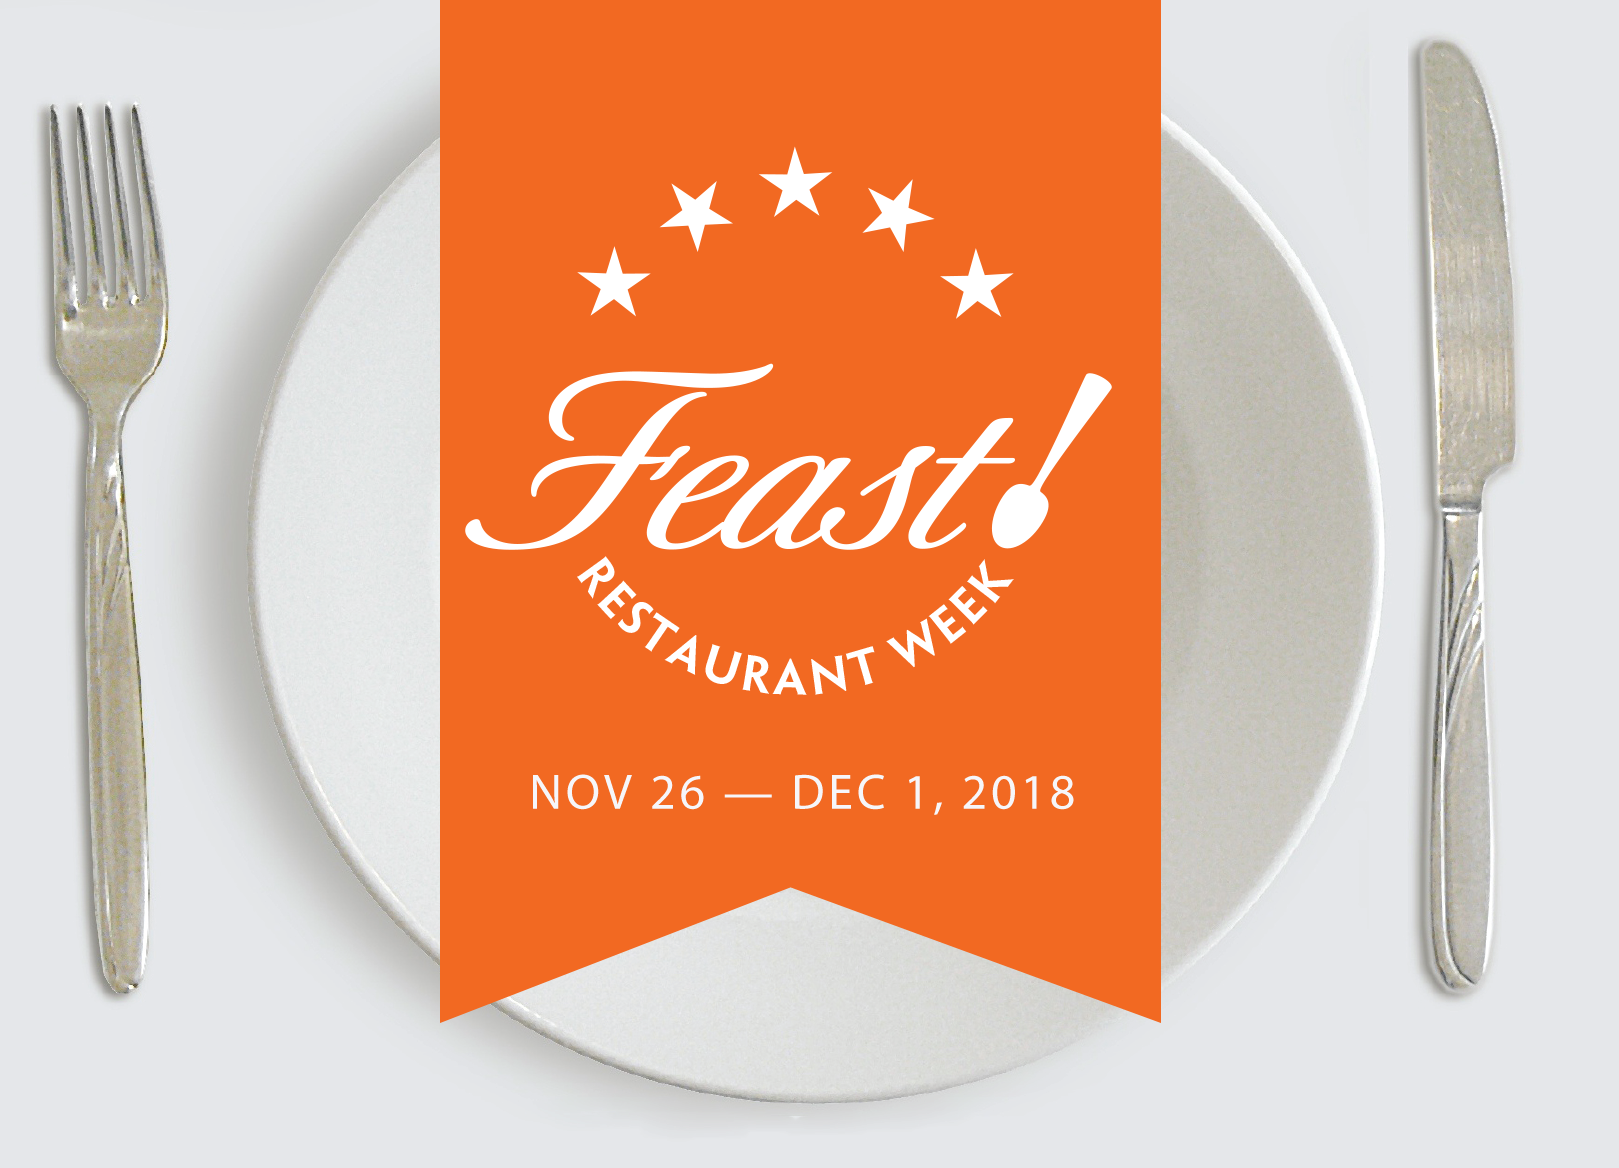 FEAST Restaurant Week 2018